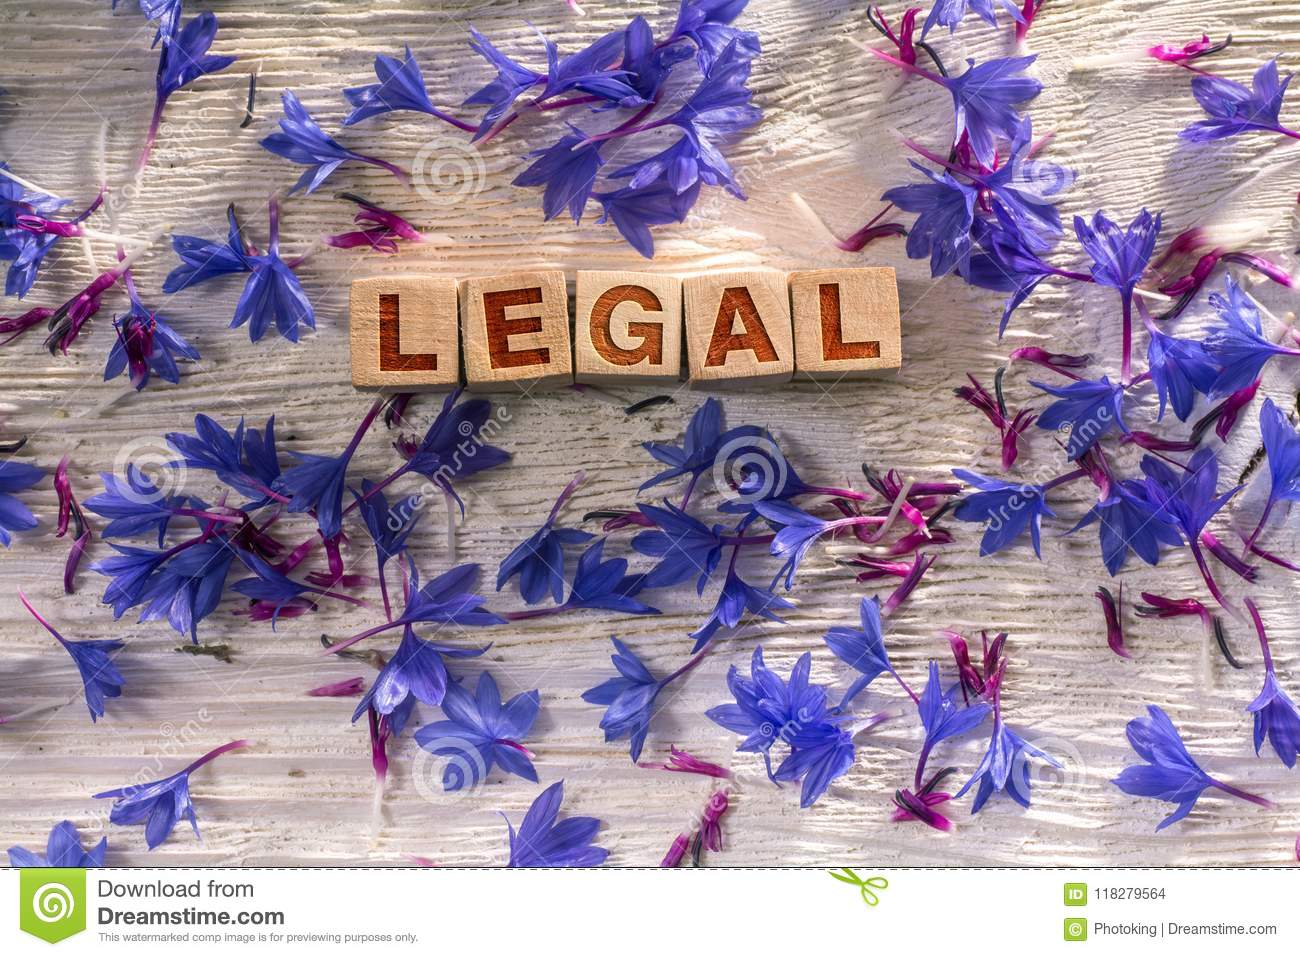 Legal on the wooden cubes